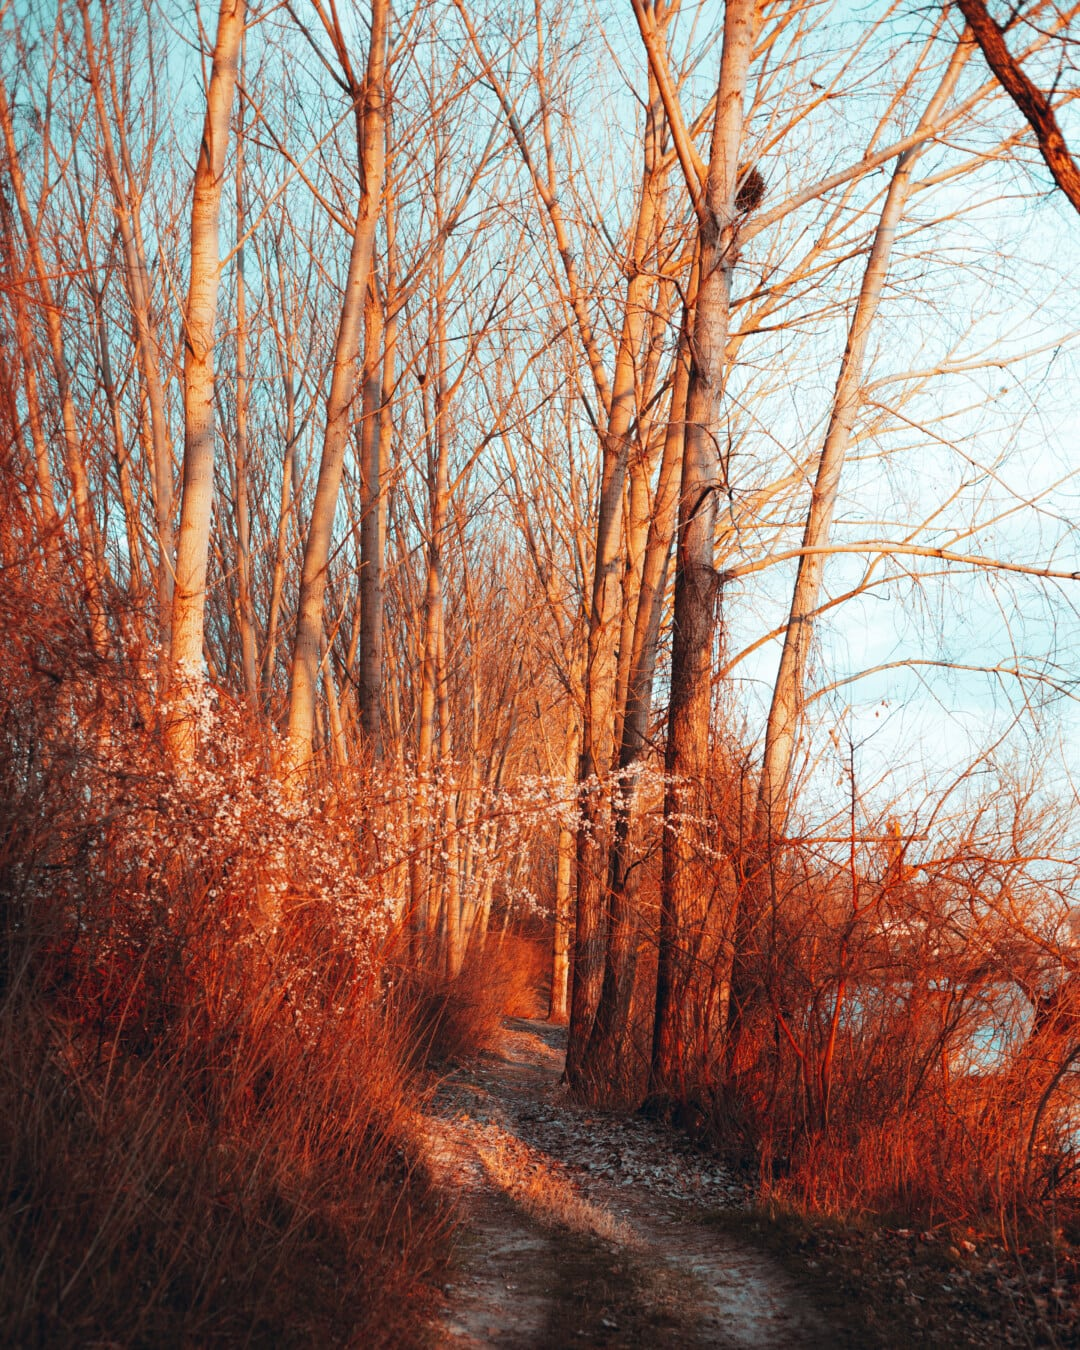 willow, autumn season, forest, forest path, shrub, wood, trees, tree, nature, landscape